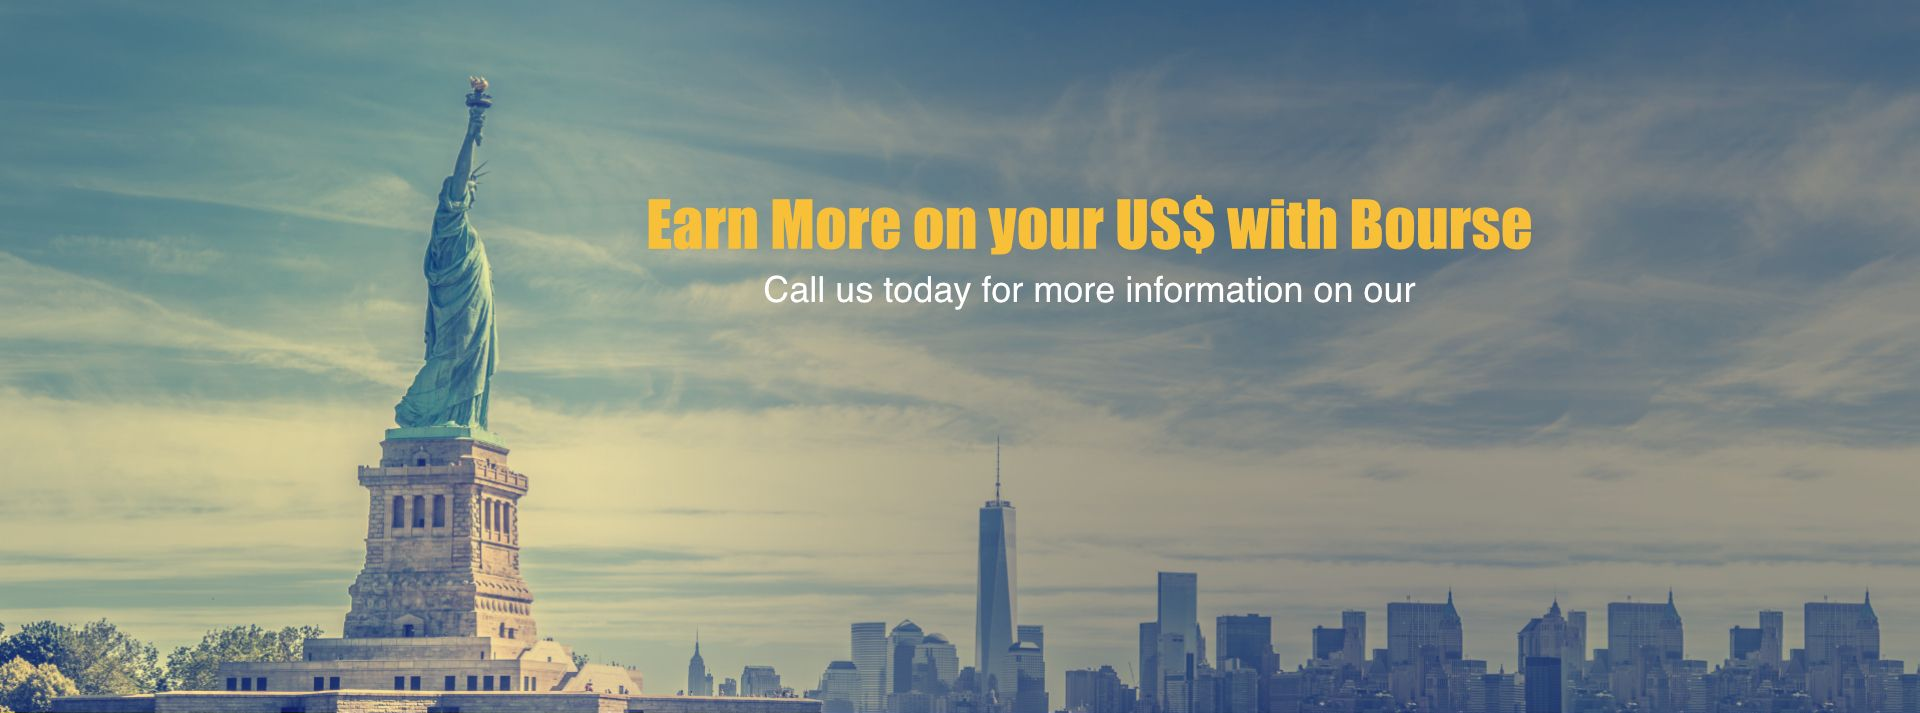 Earn more on your US